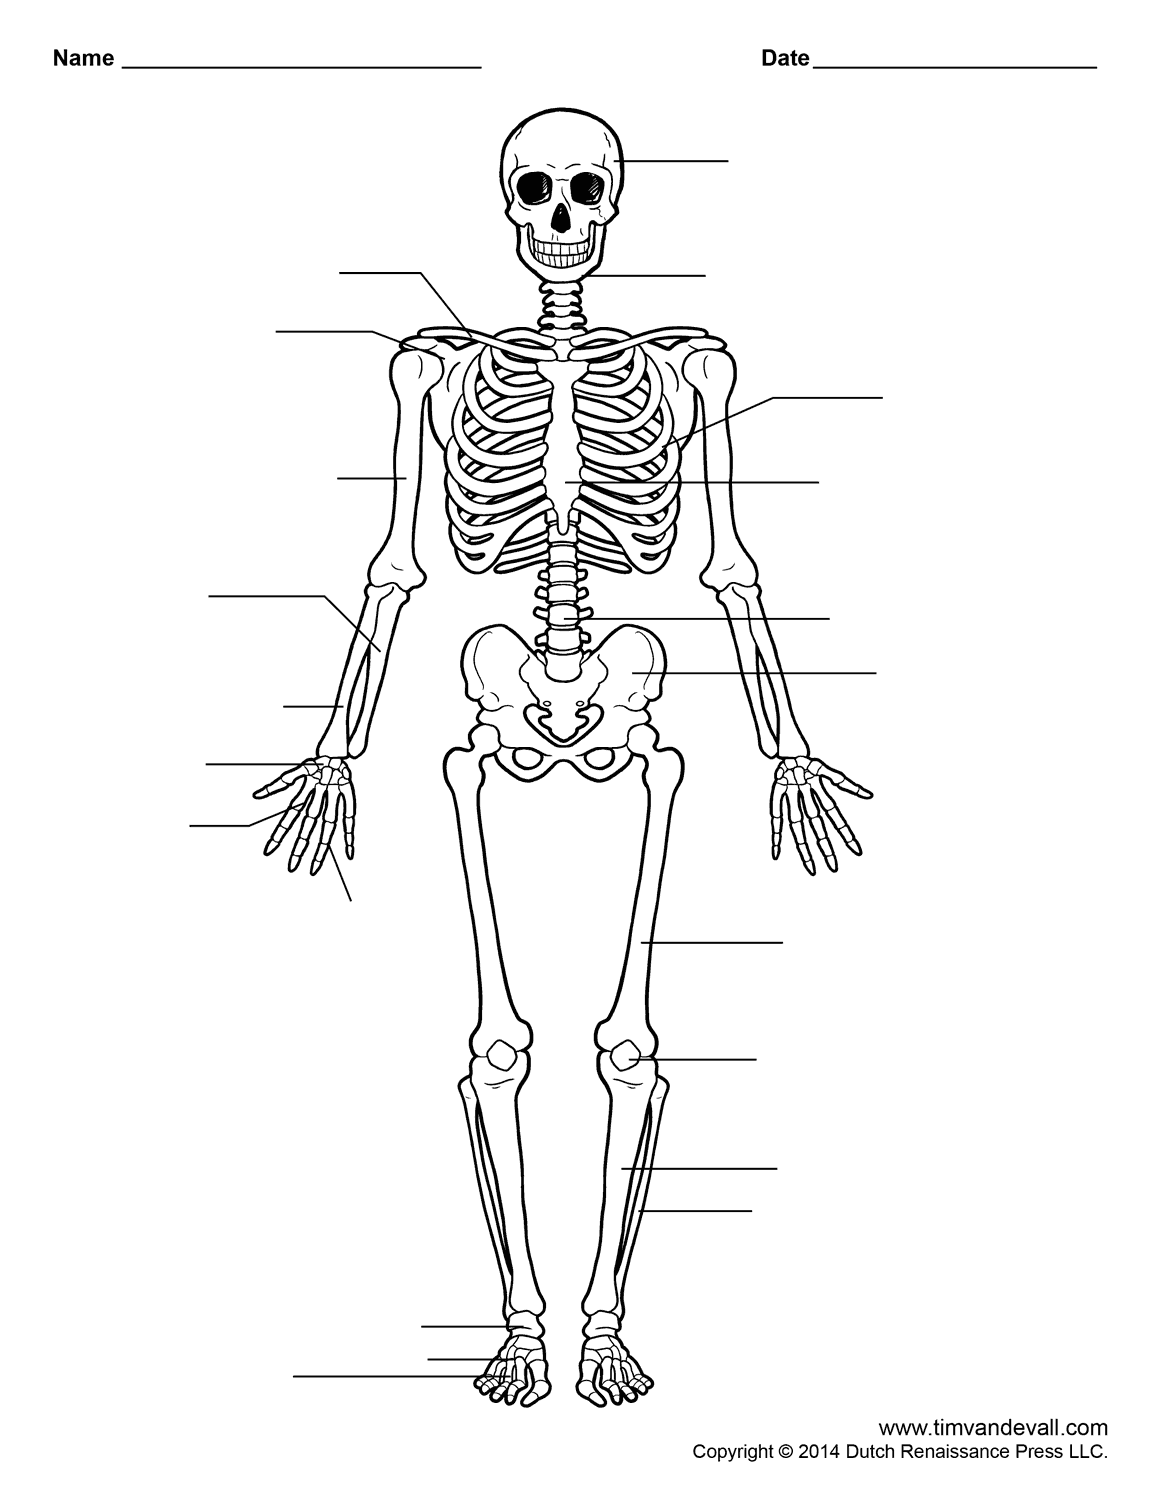 free printable human skeleton worksheet for students and teachers, Wiring diagram